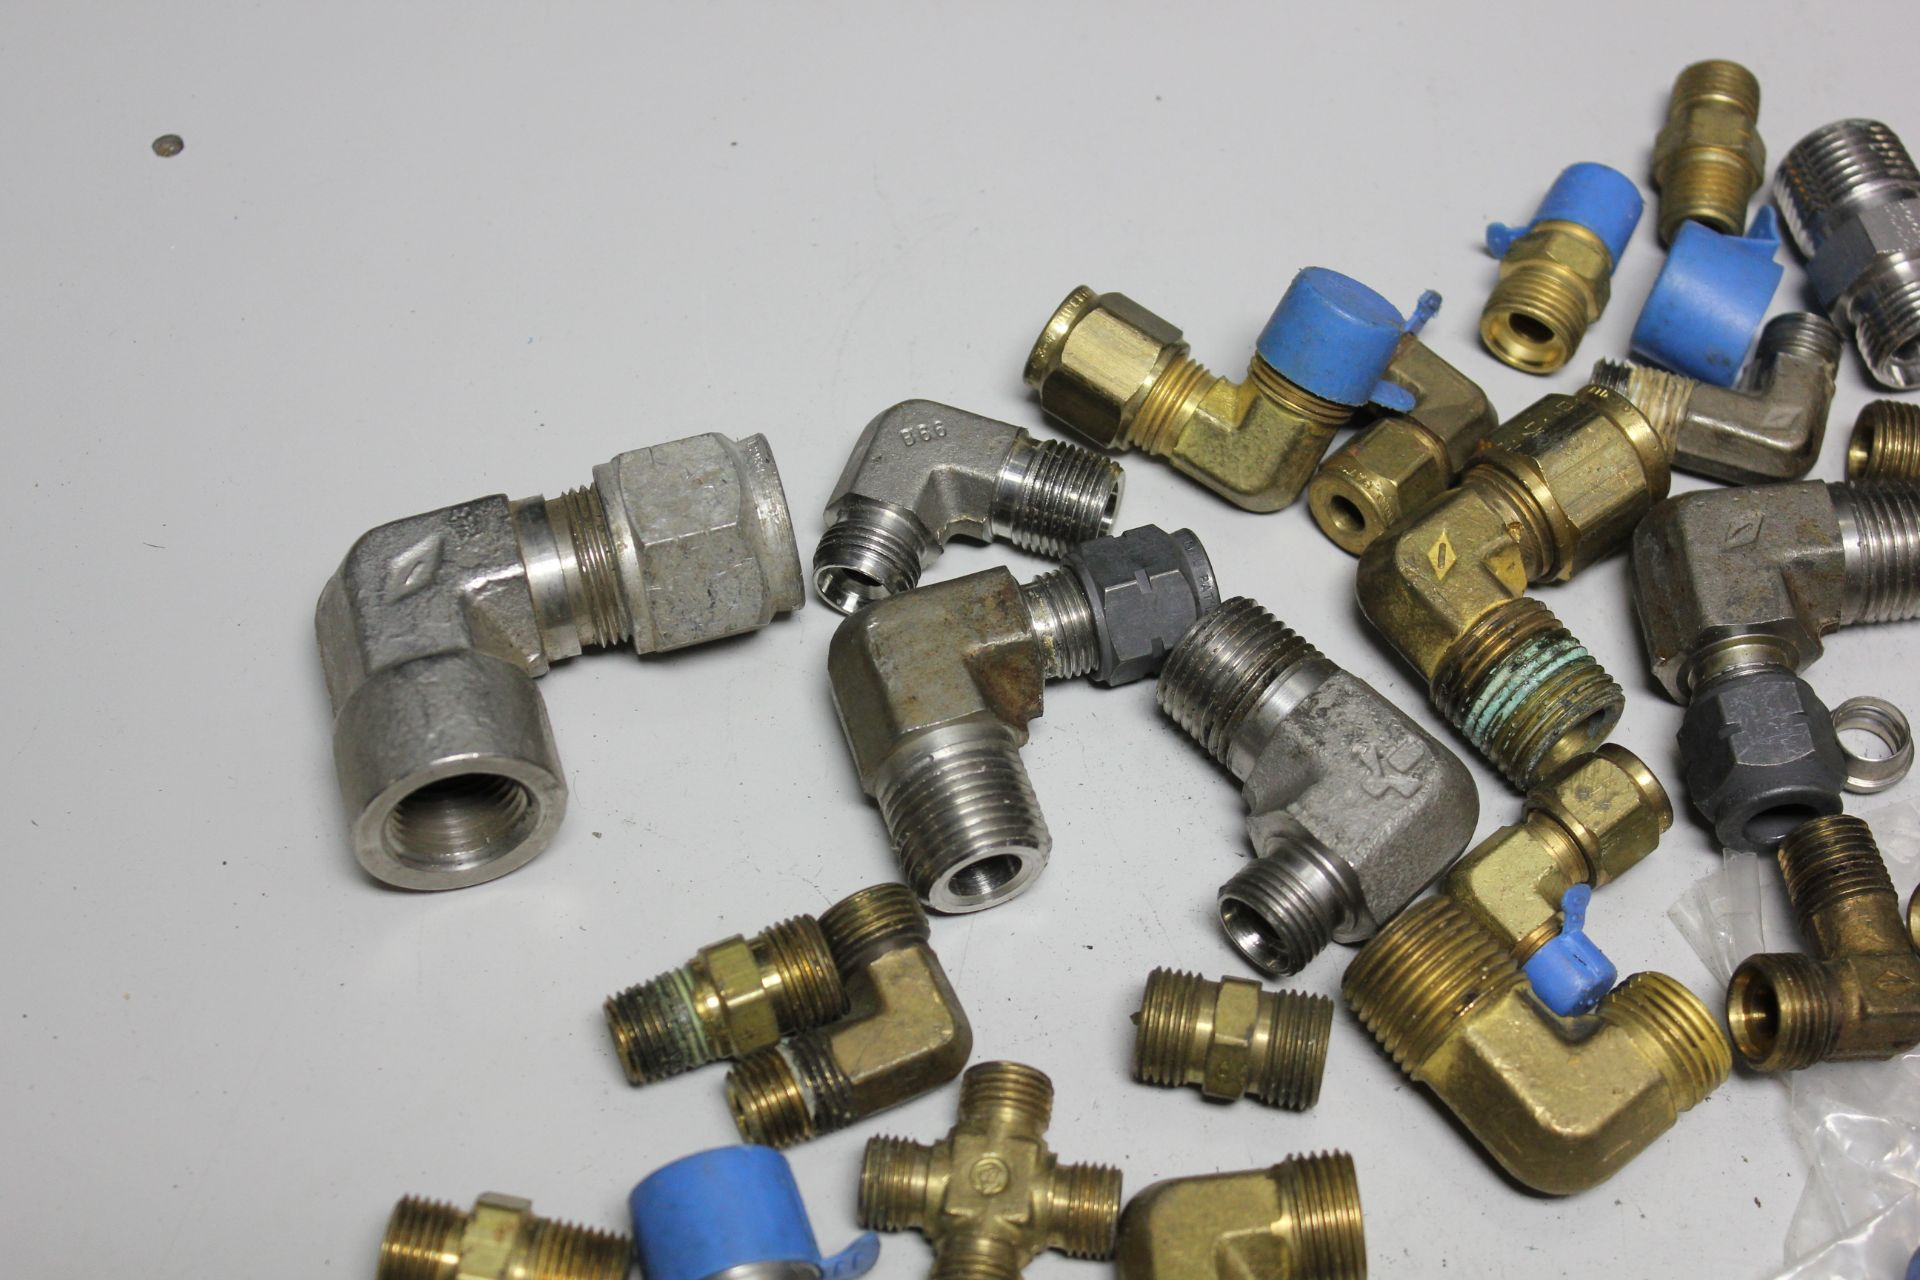 LOT OF COMPRESSION FITTINGS - Image 2 of 7